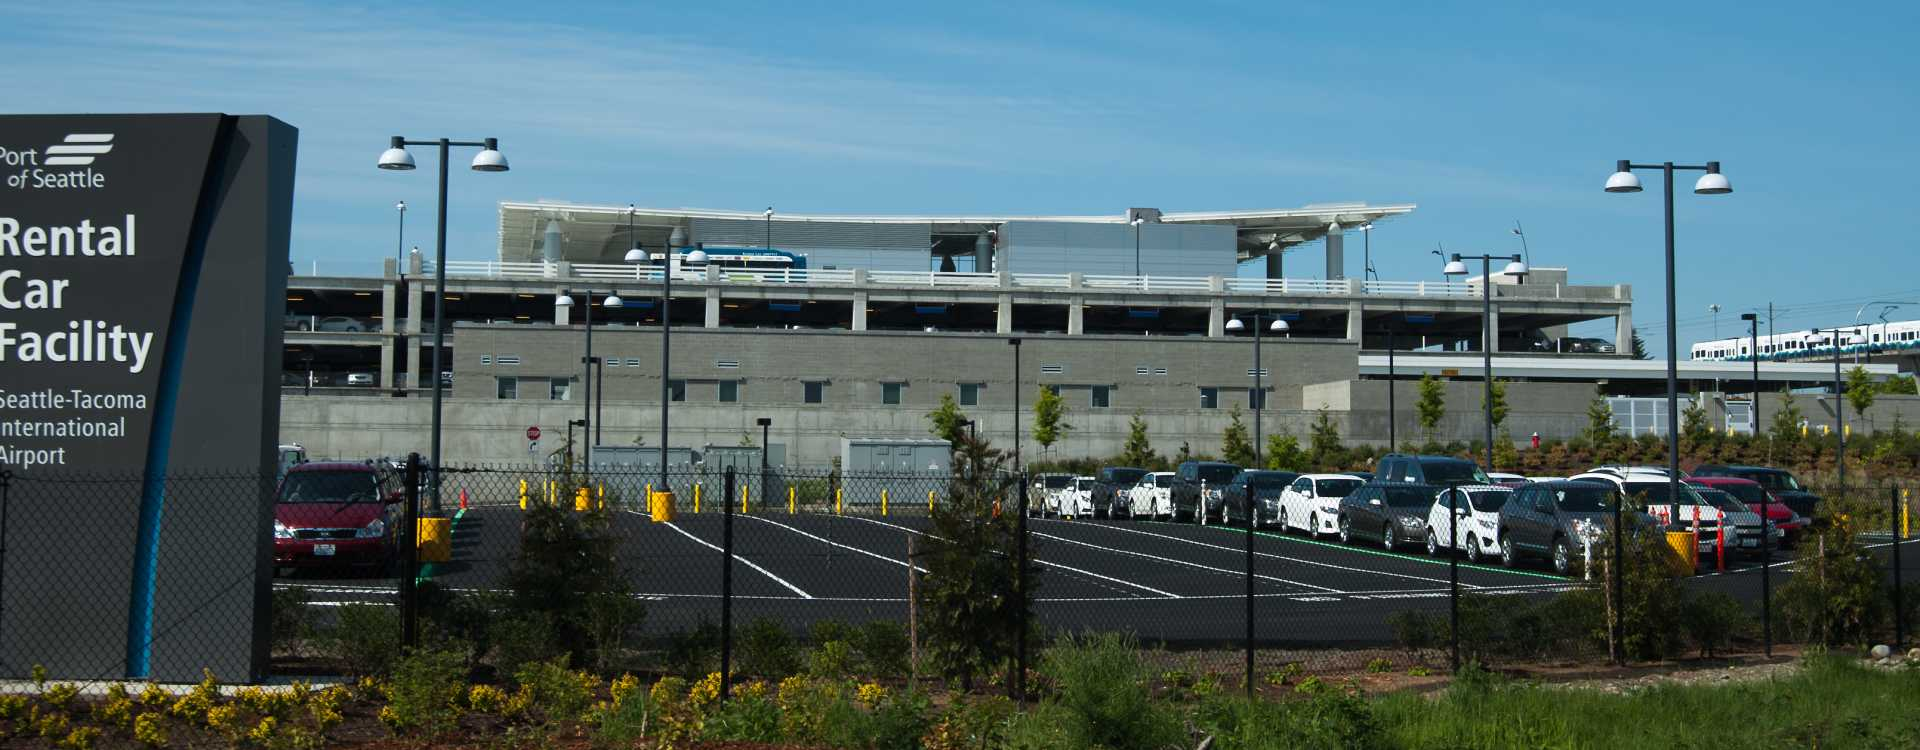 Sea-Tac_Rental_Car_Facility-3.jpg